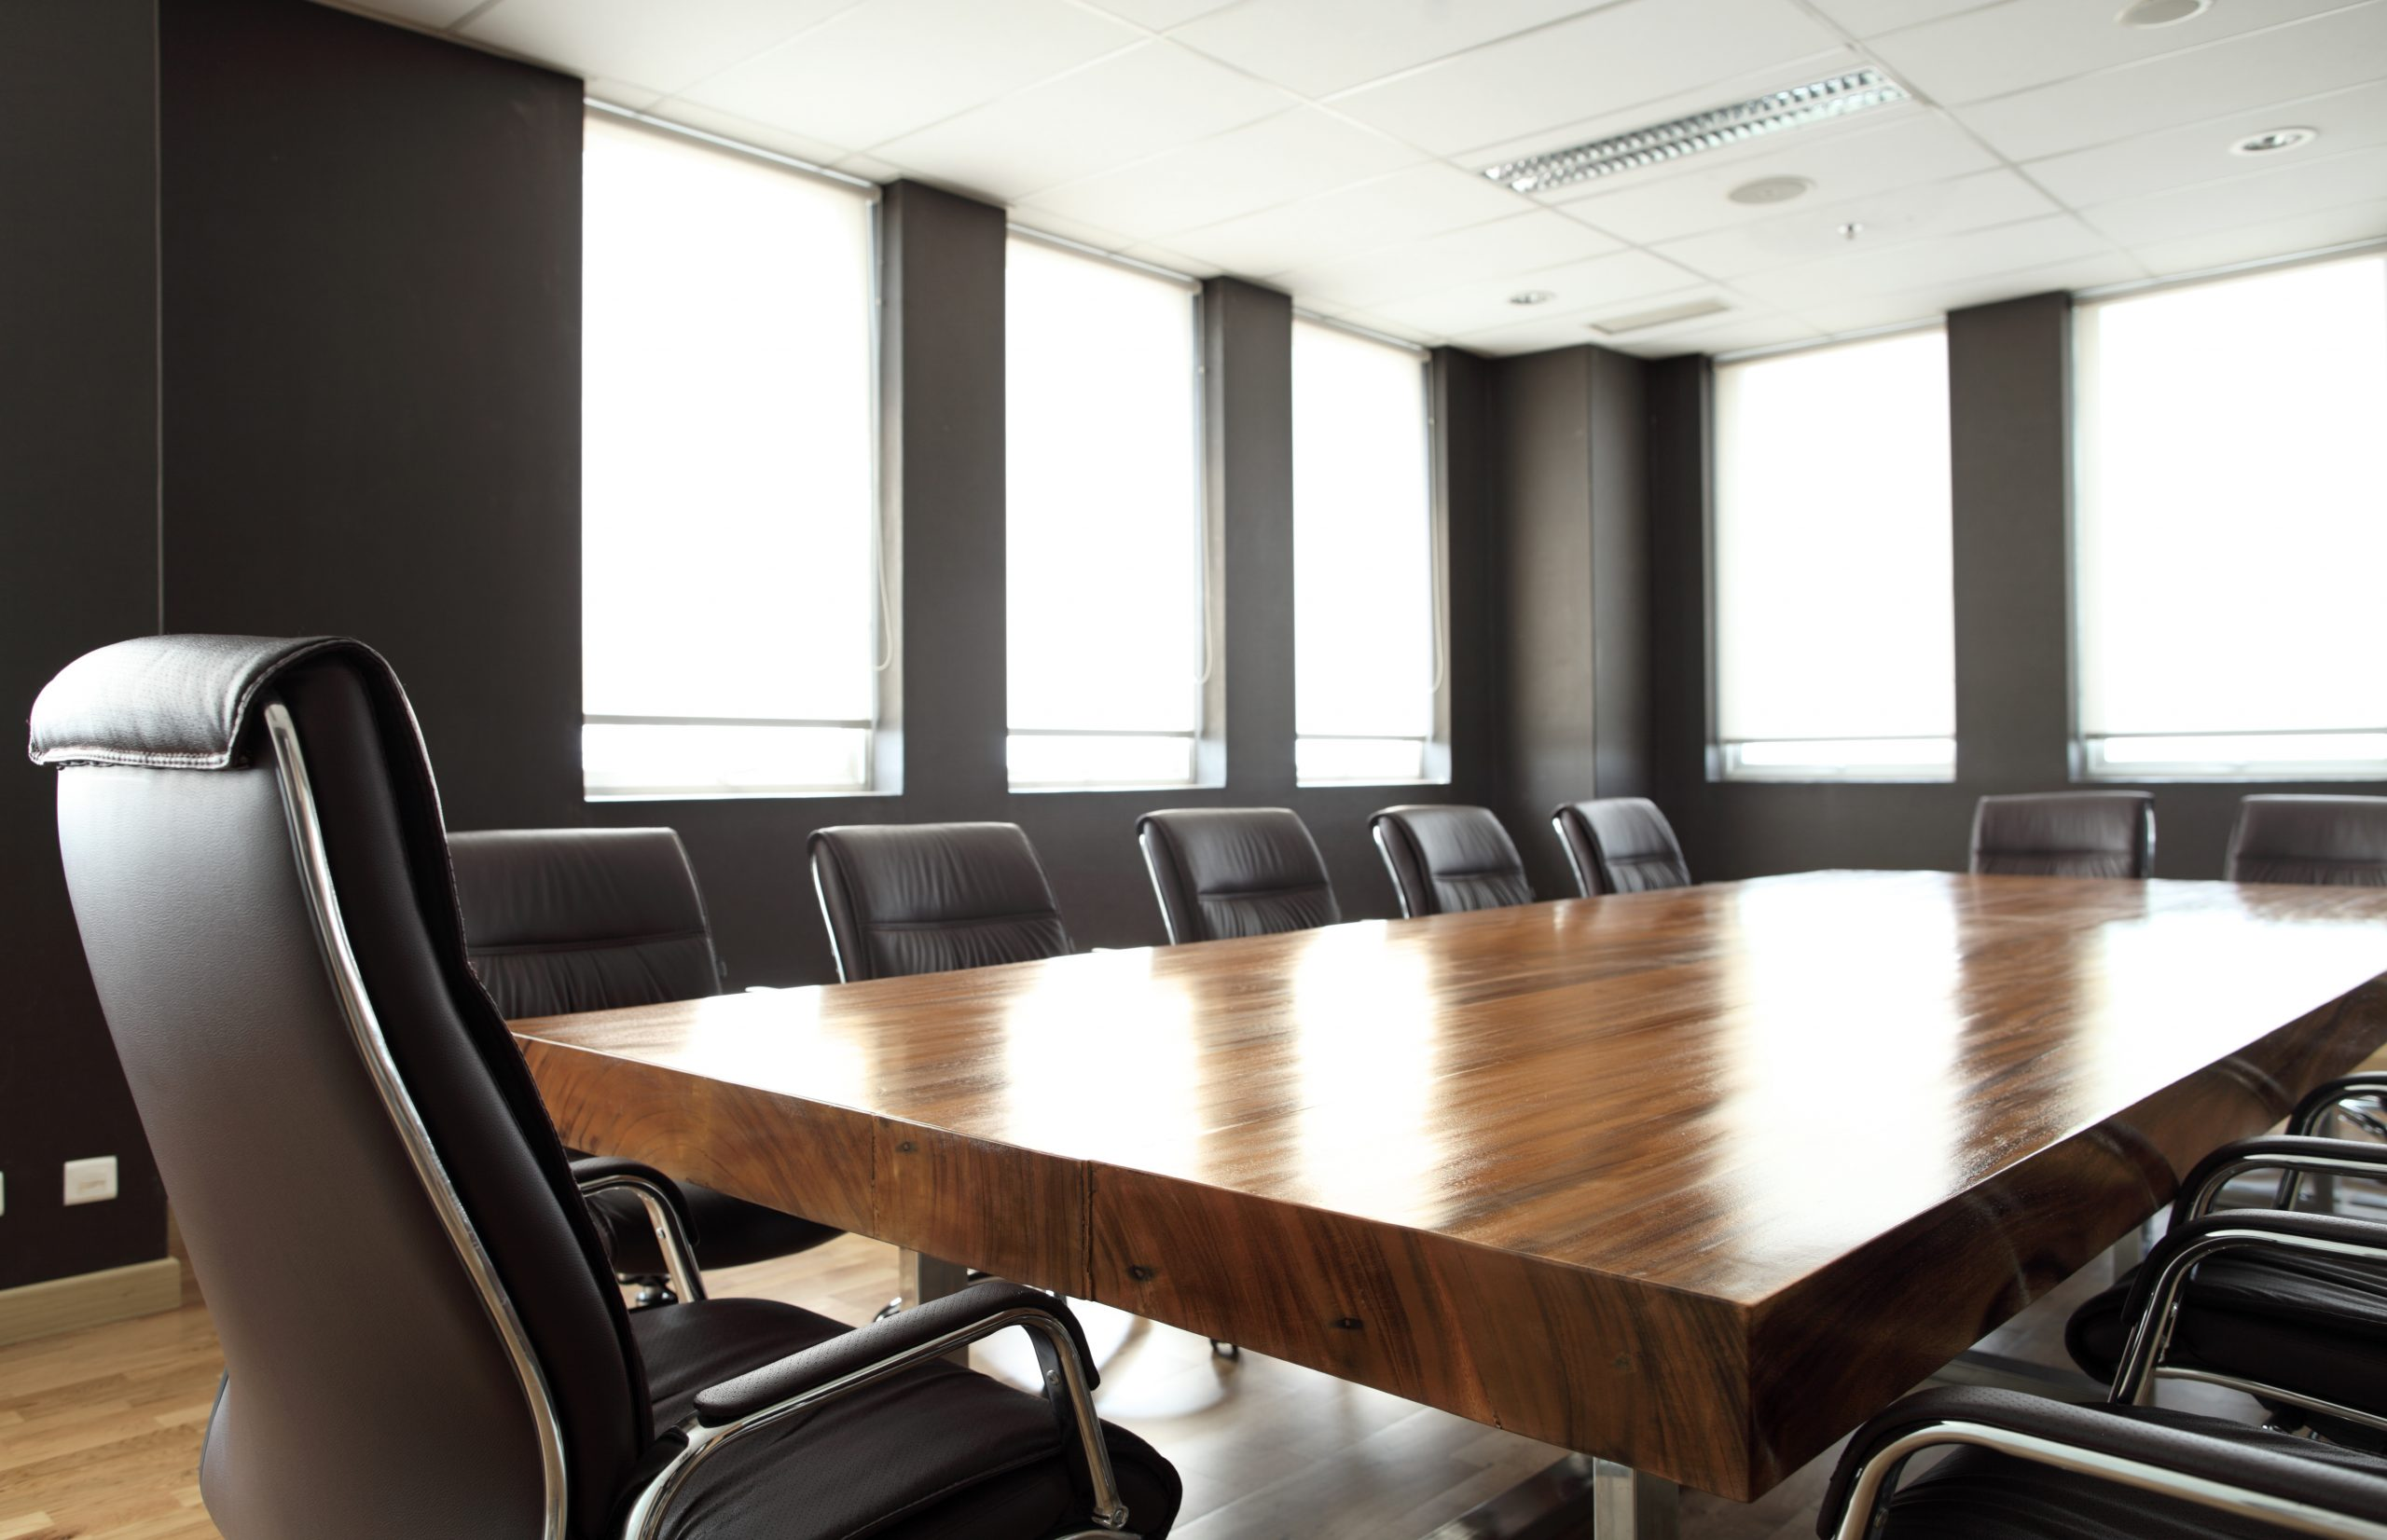 How to Control A Board Meeting